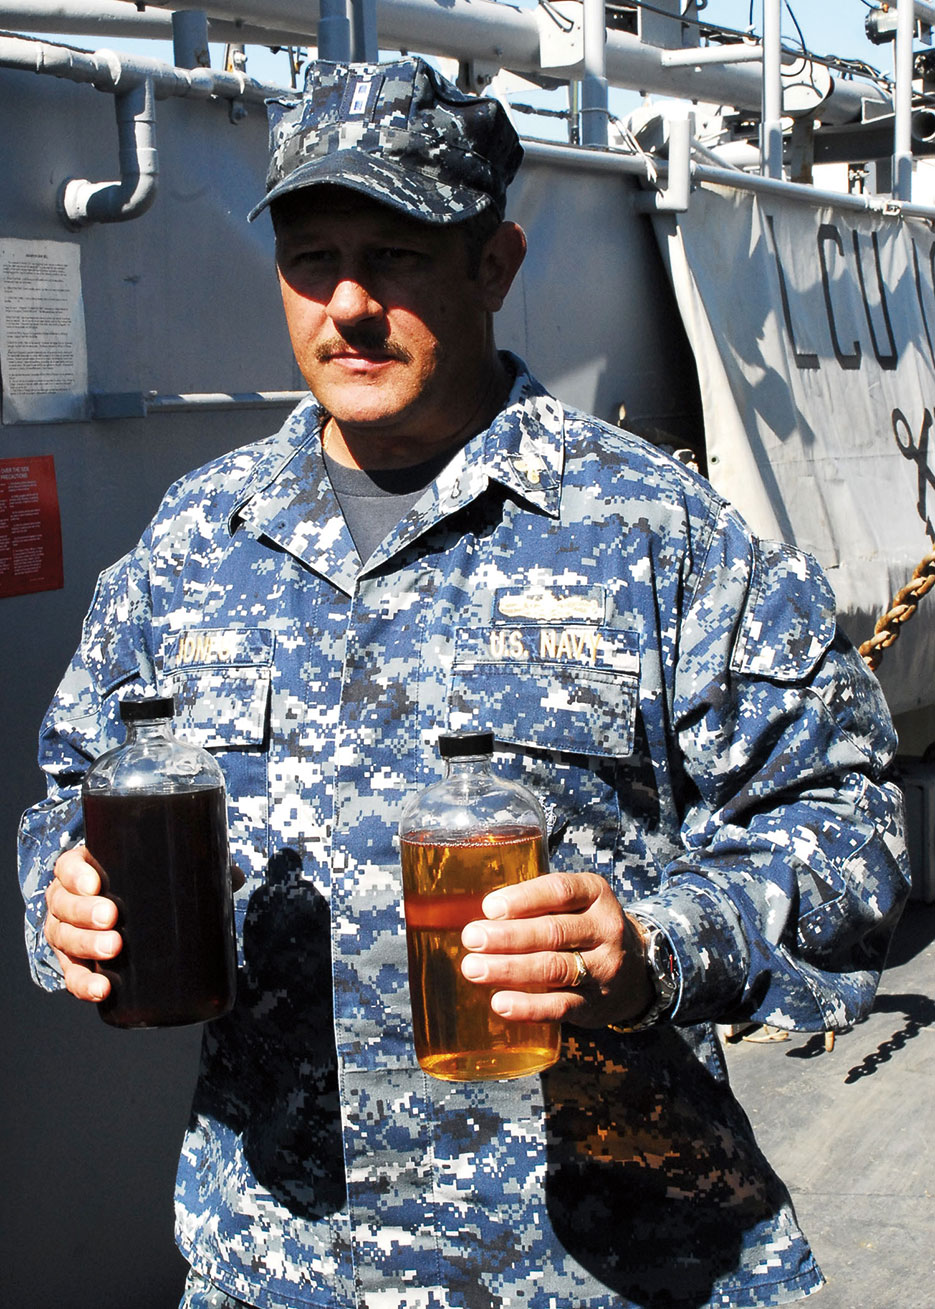 Sailor presents samples of traditional F-76 diesel fuel and 50/50 biofuel blend to illustrate use of biofuels in support of Navy Secretary's goal to cut petroleum consumption in half by 2015 (U.S. Navy/Lolita Lewis)